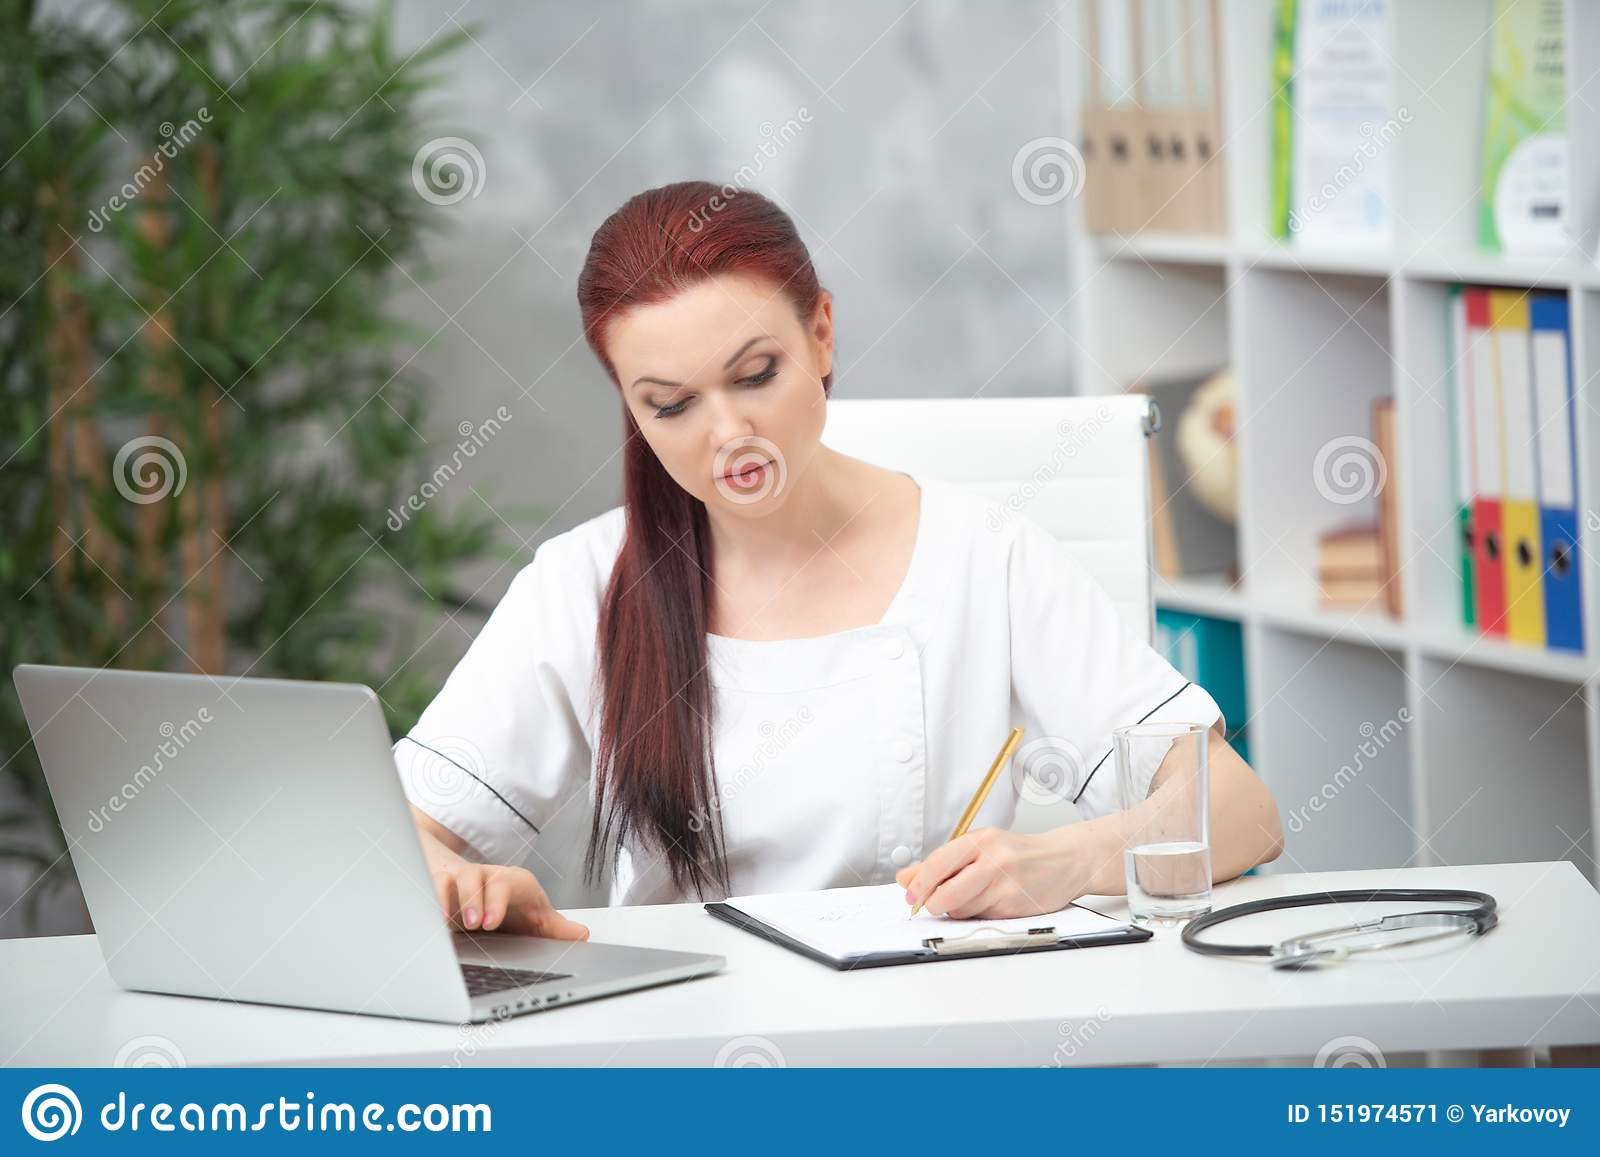 Confident woman doctor sitting at the table in her office and works at the computer. healthcare concept